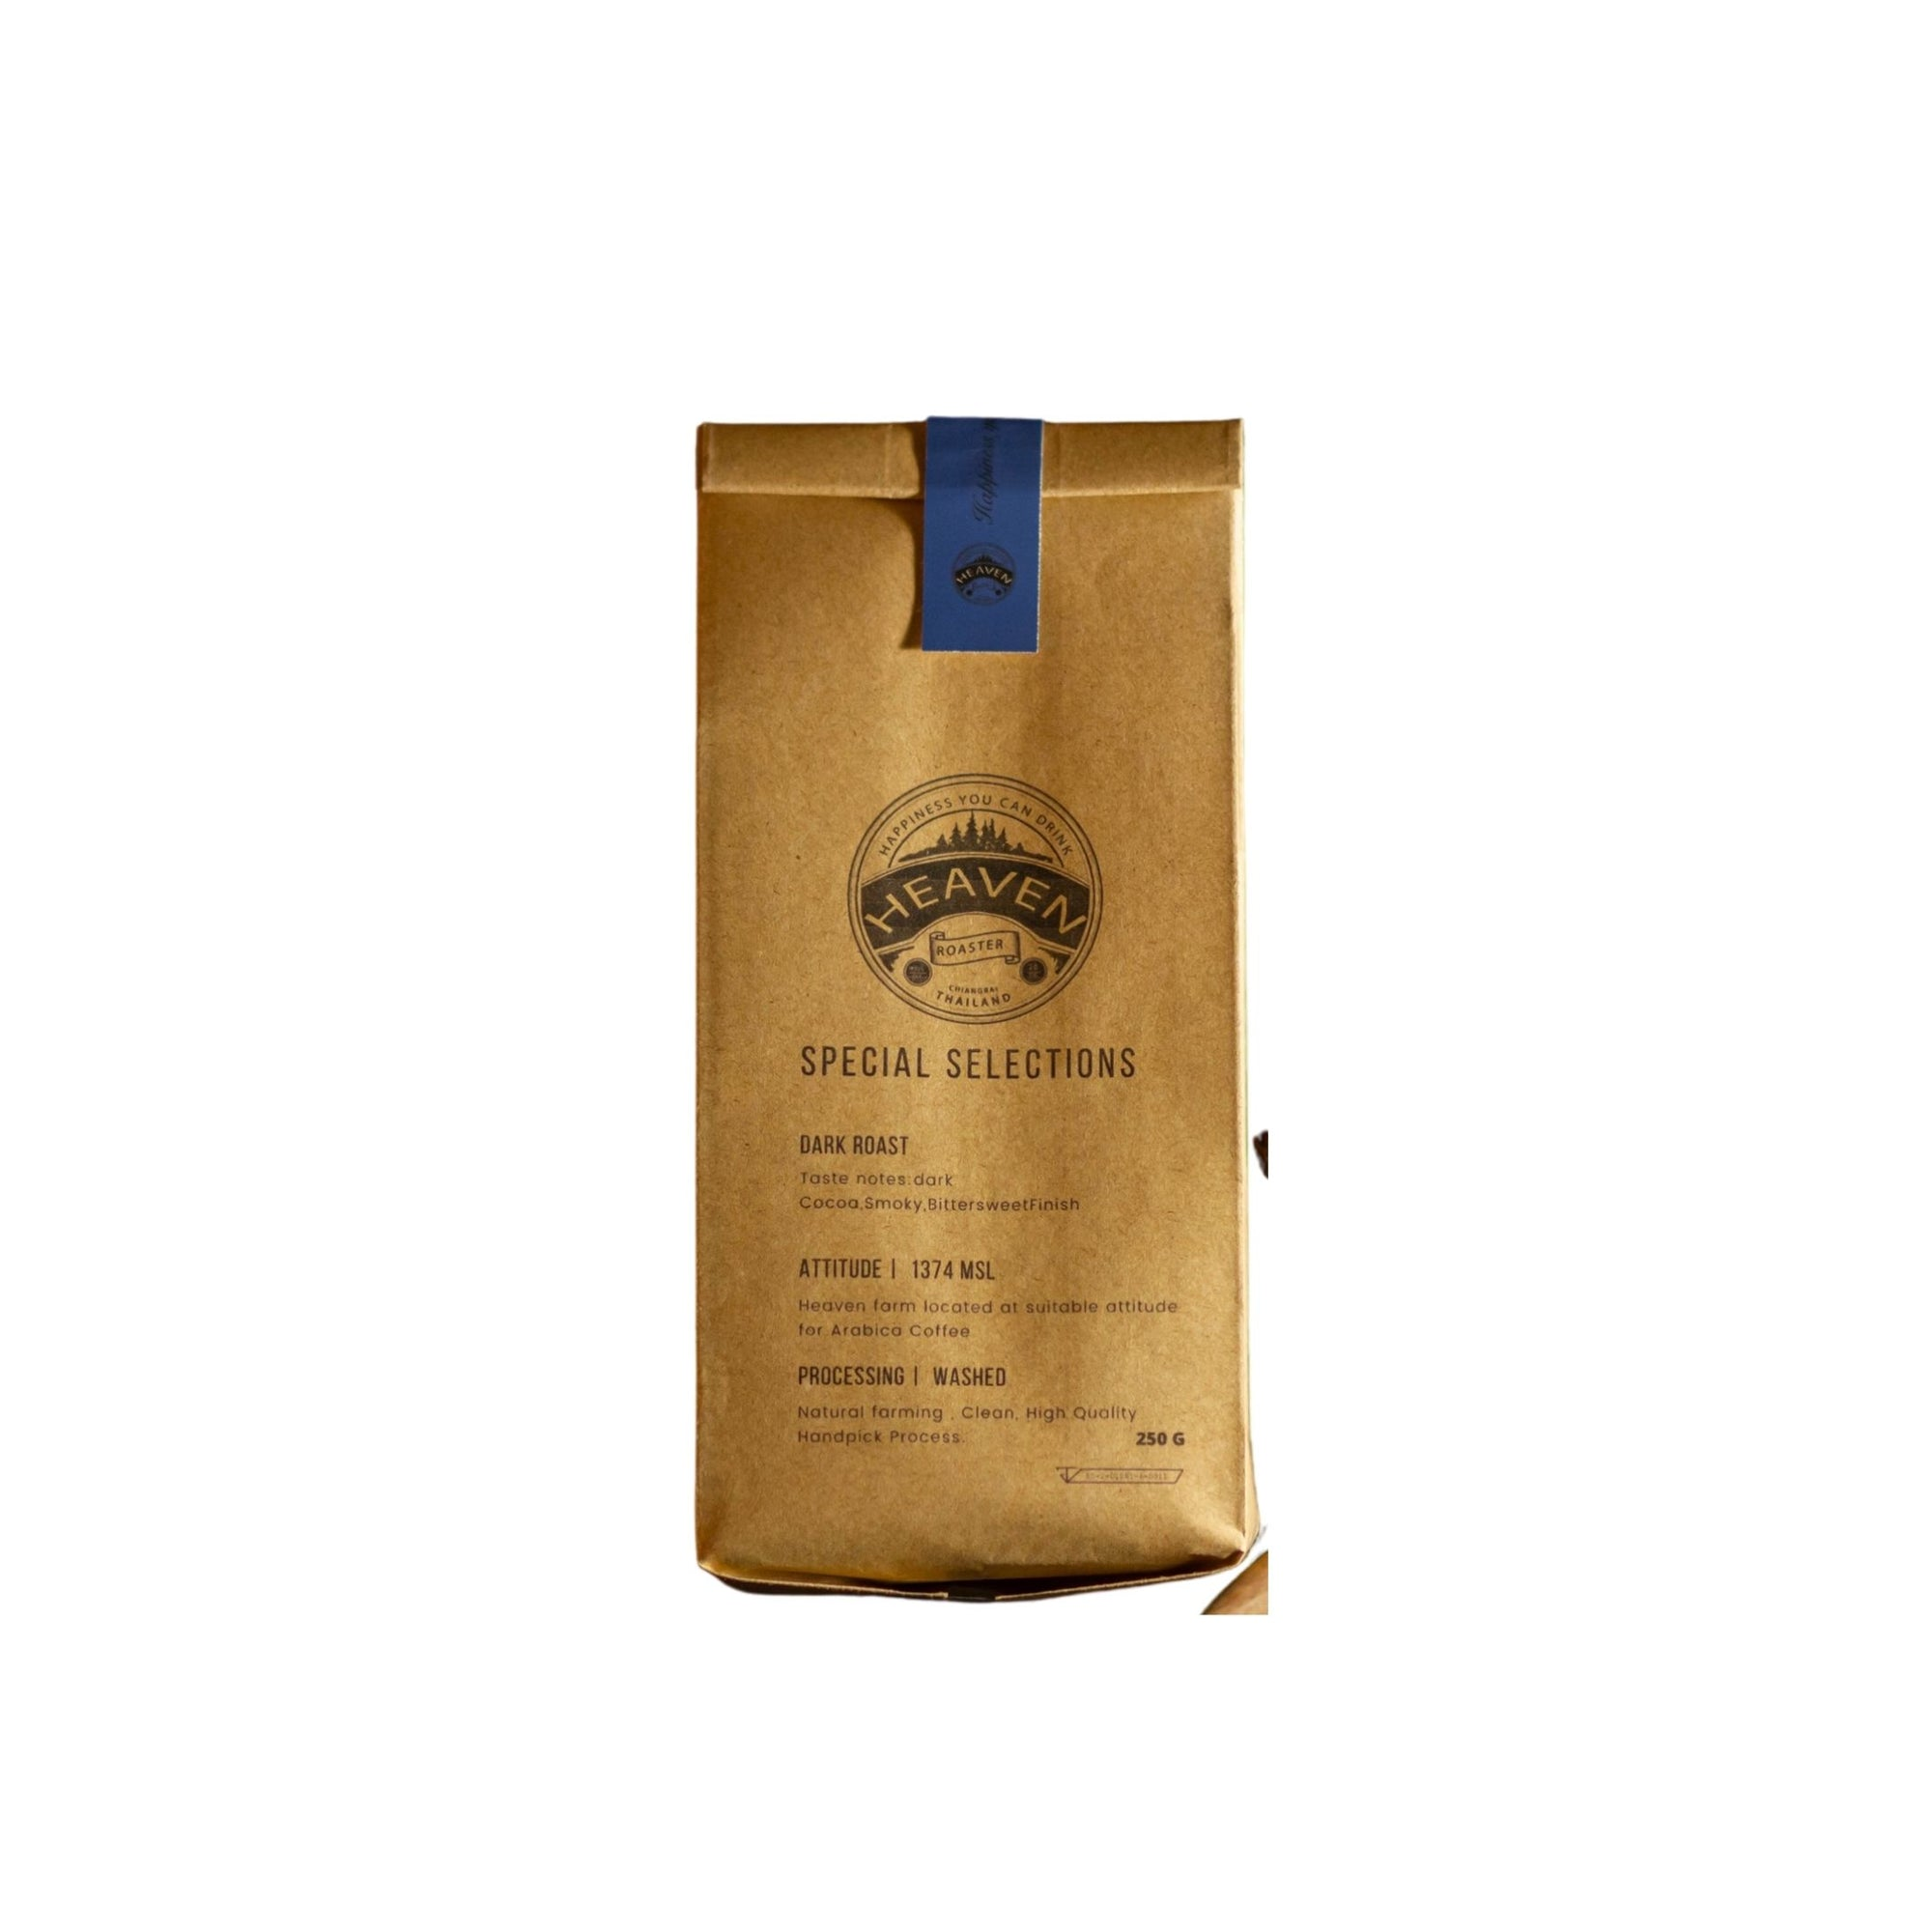 Doi Chang Dark Roast 250g